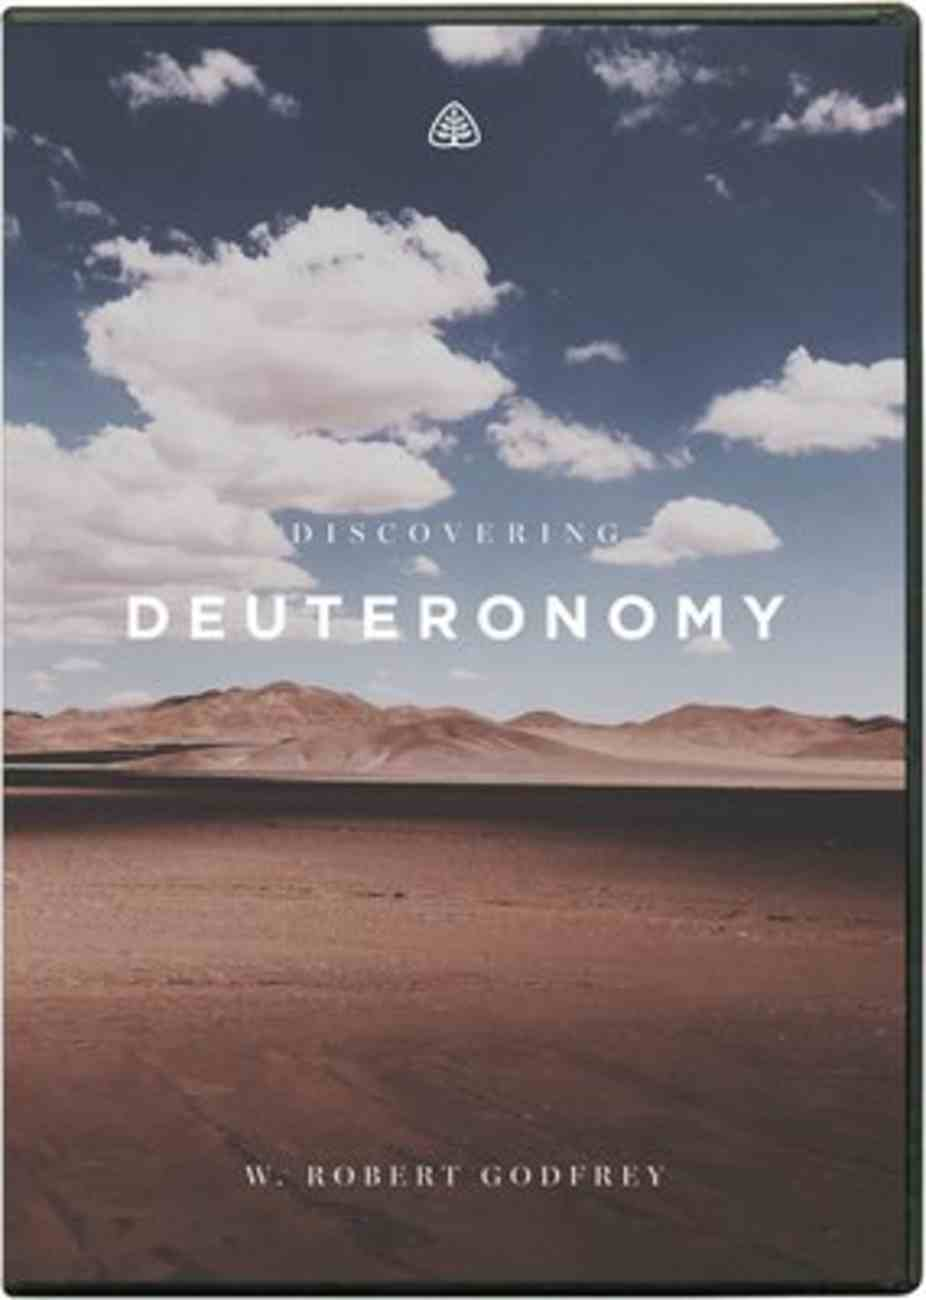 Discovering Deuteronomy (Dvd, Twenty One 23-minute Messages) DVD